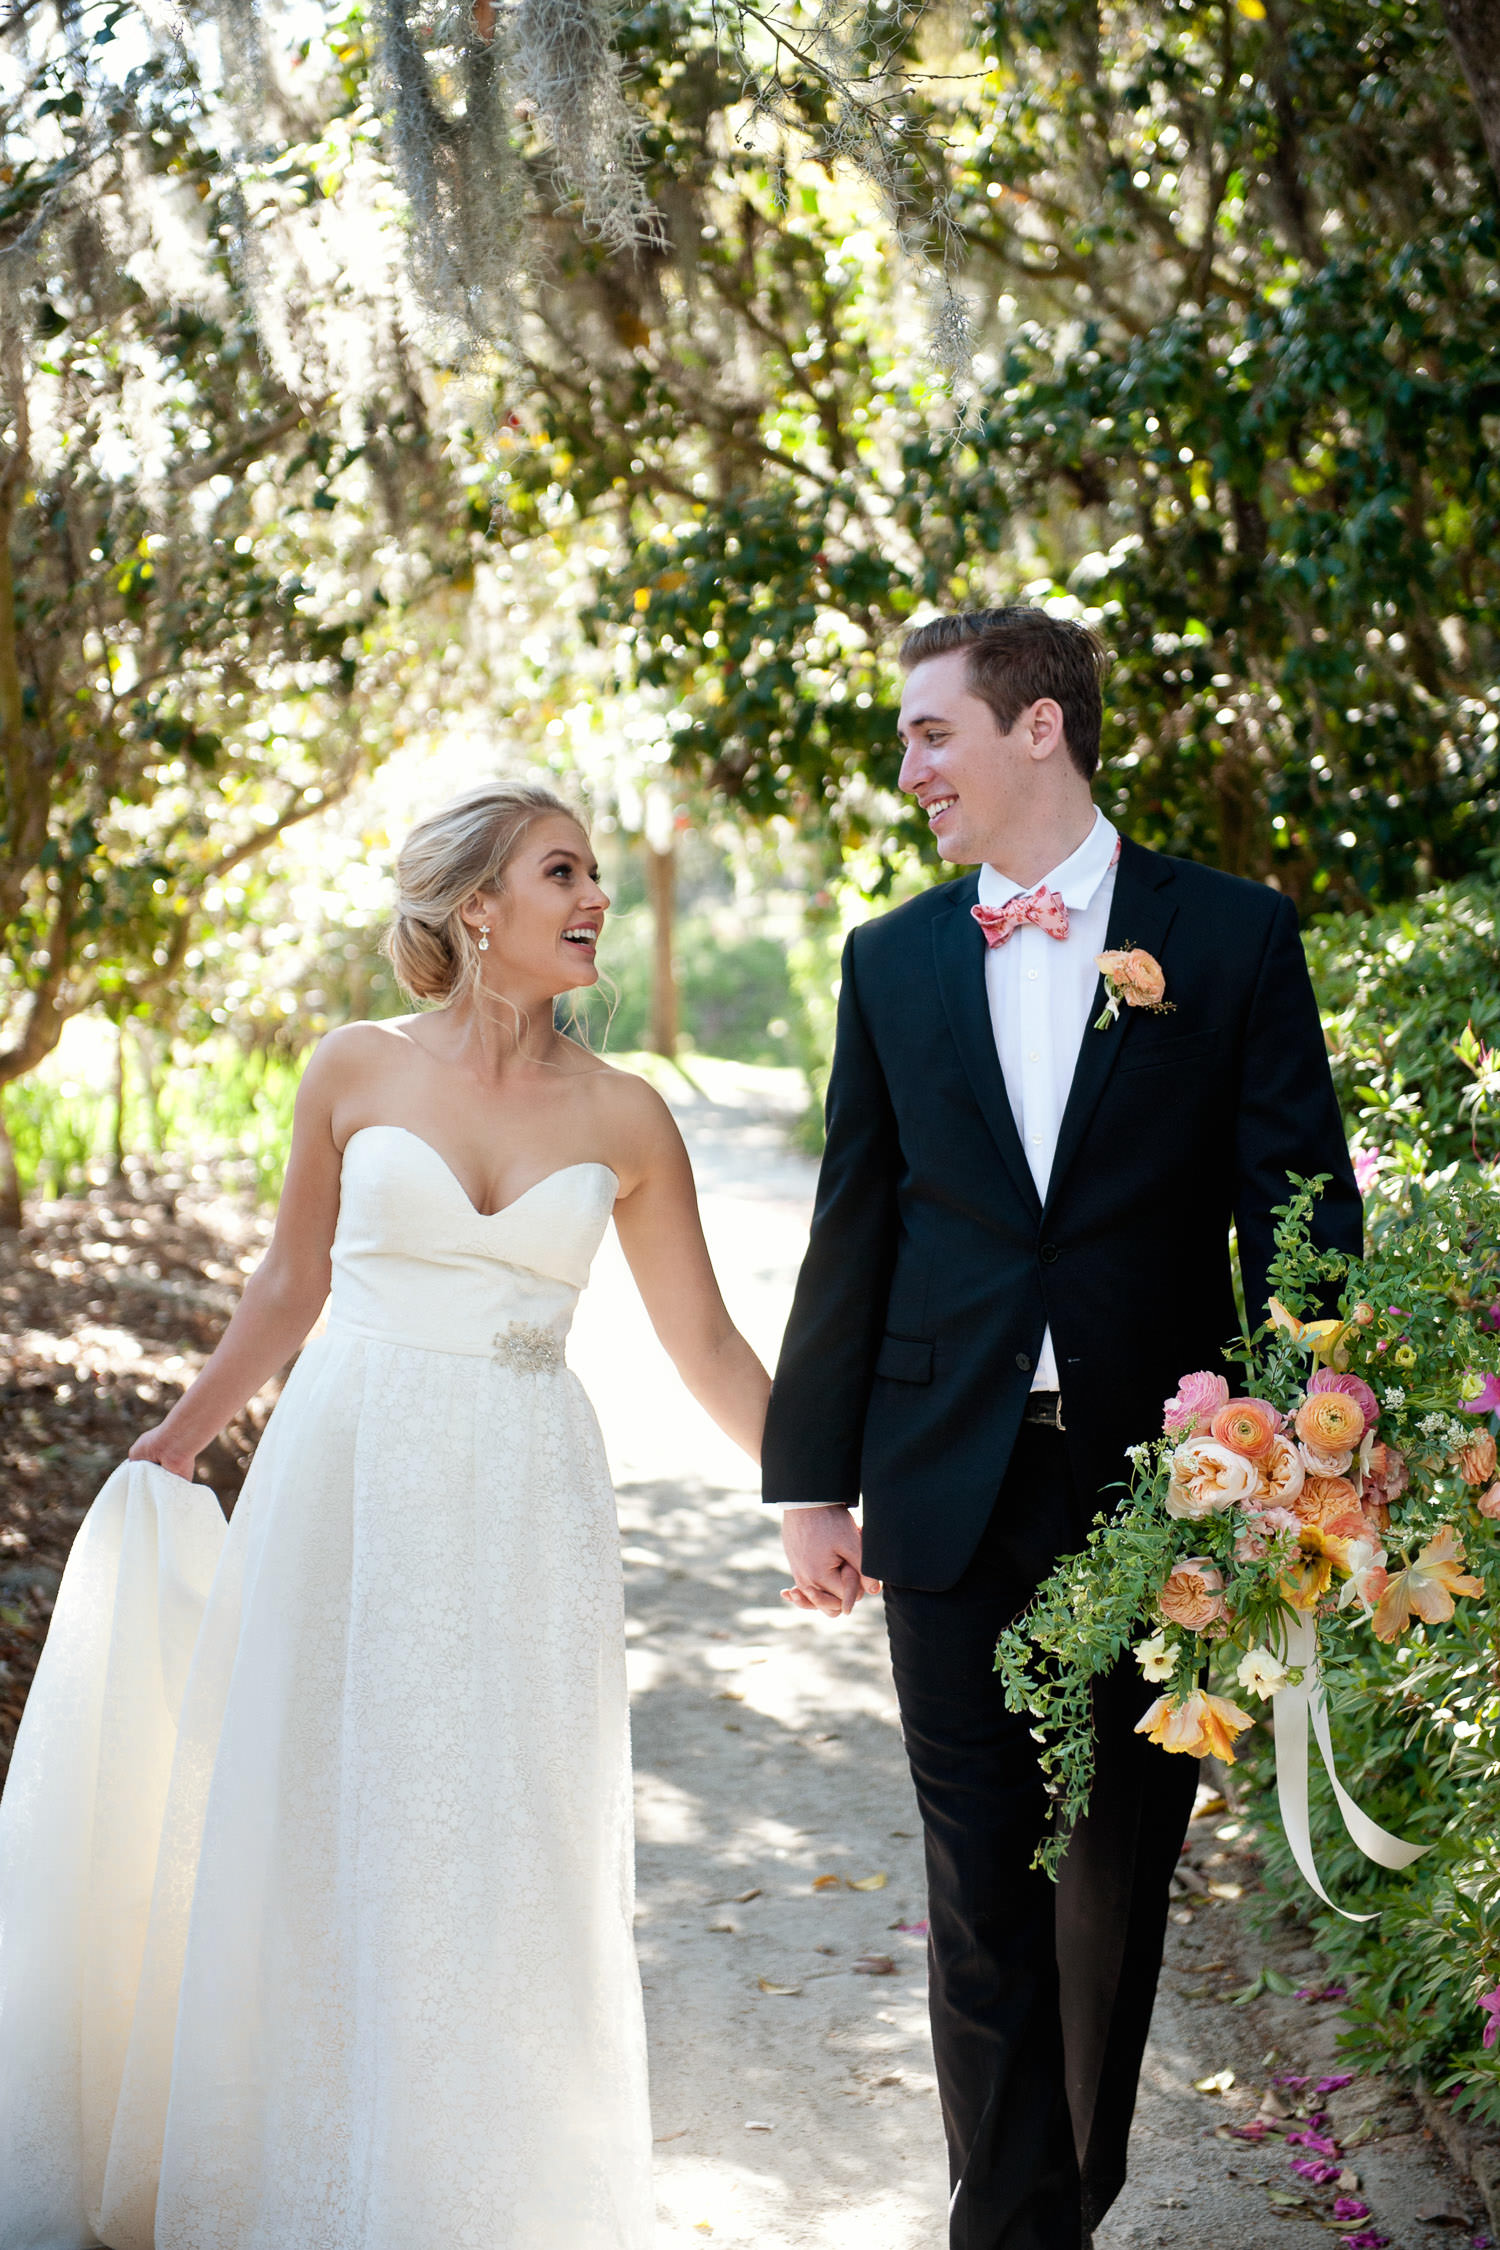 Bride & groom after their wedding captured by Tara Whittaker Photography